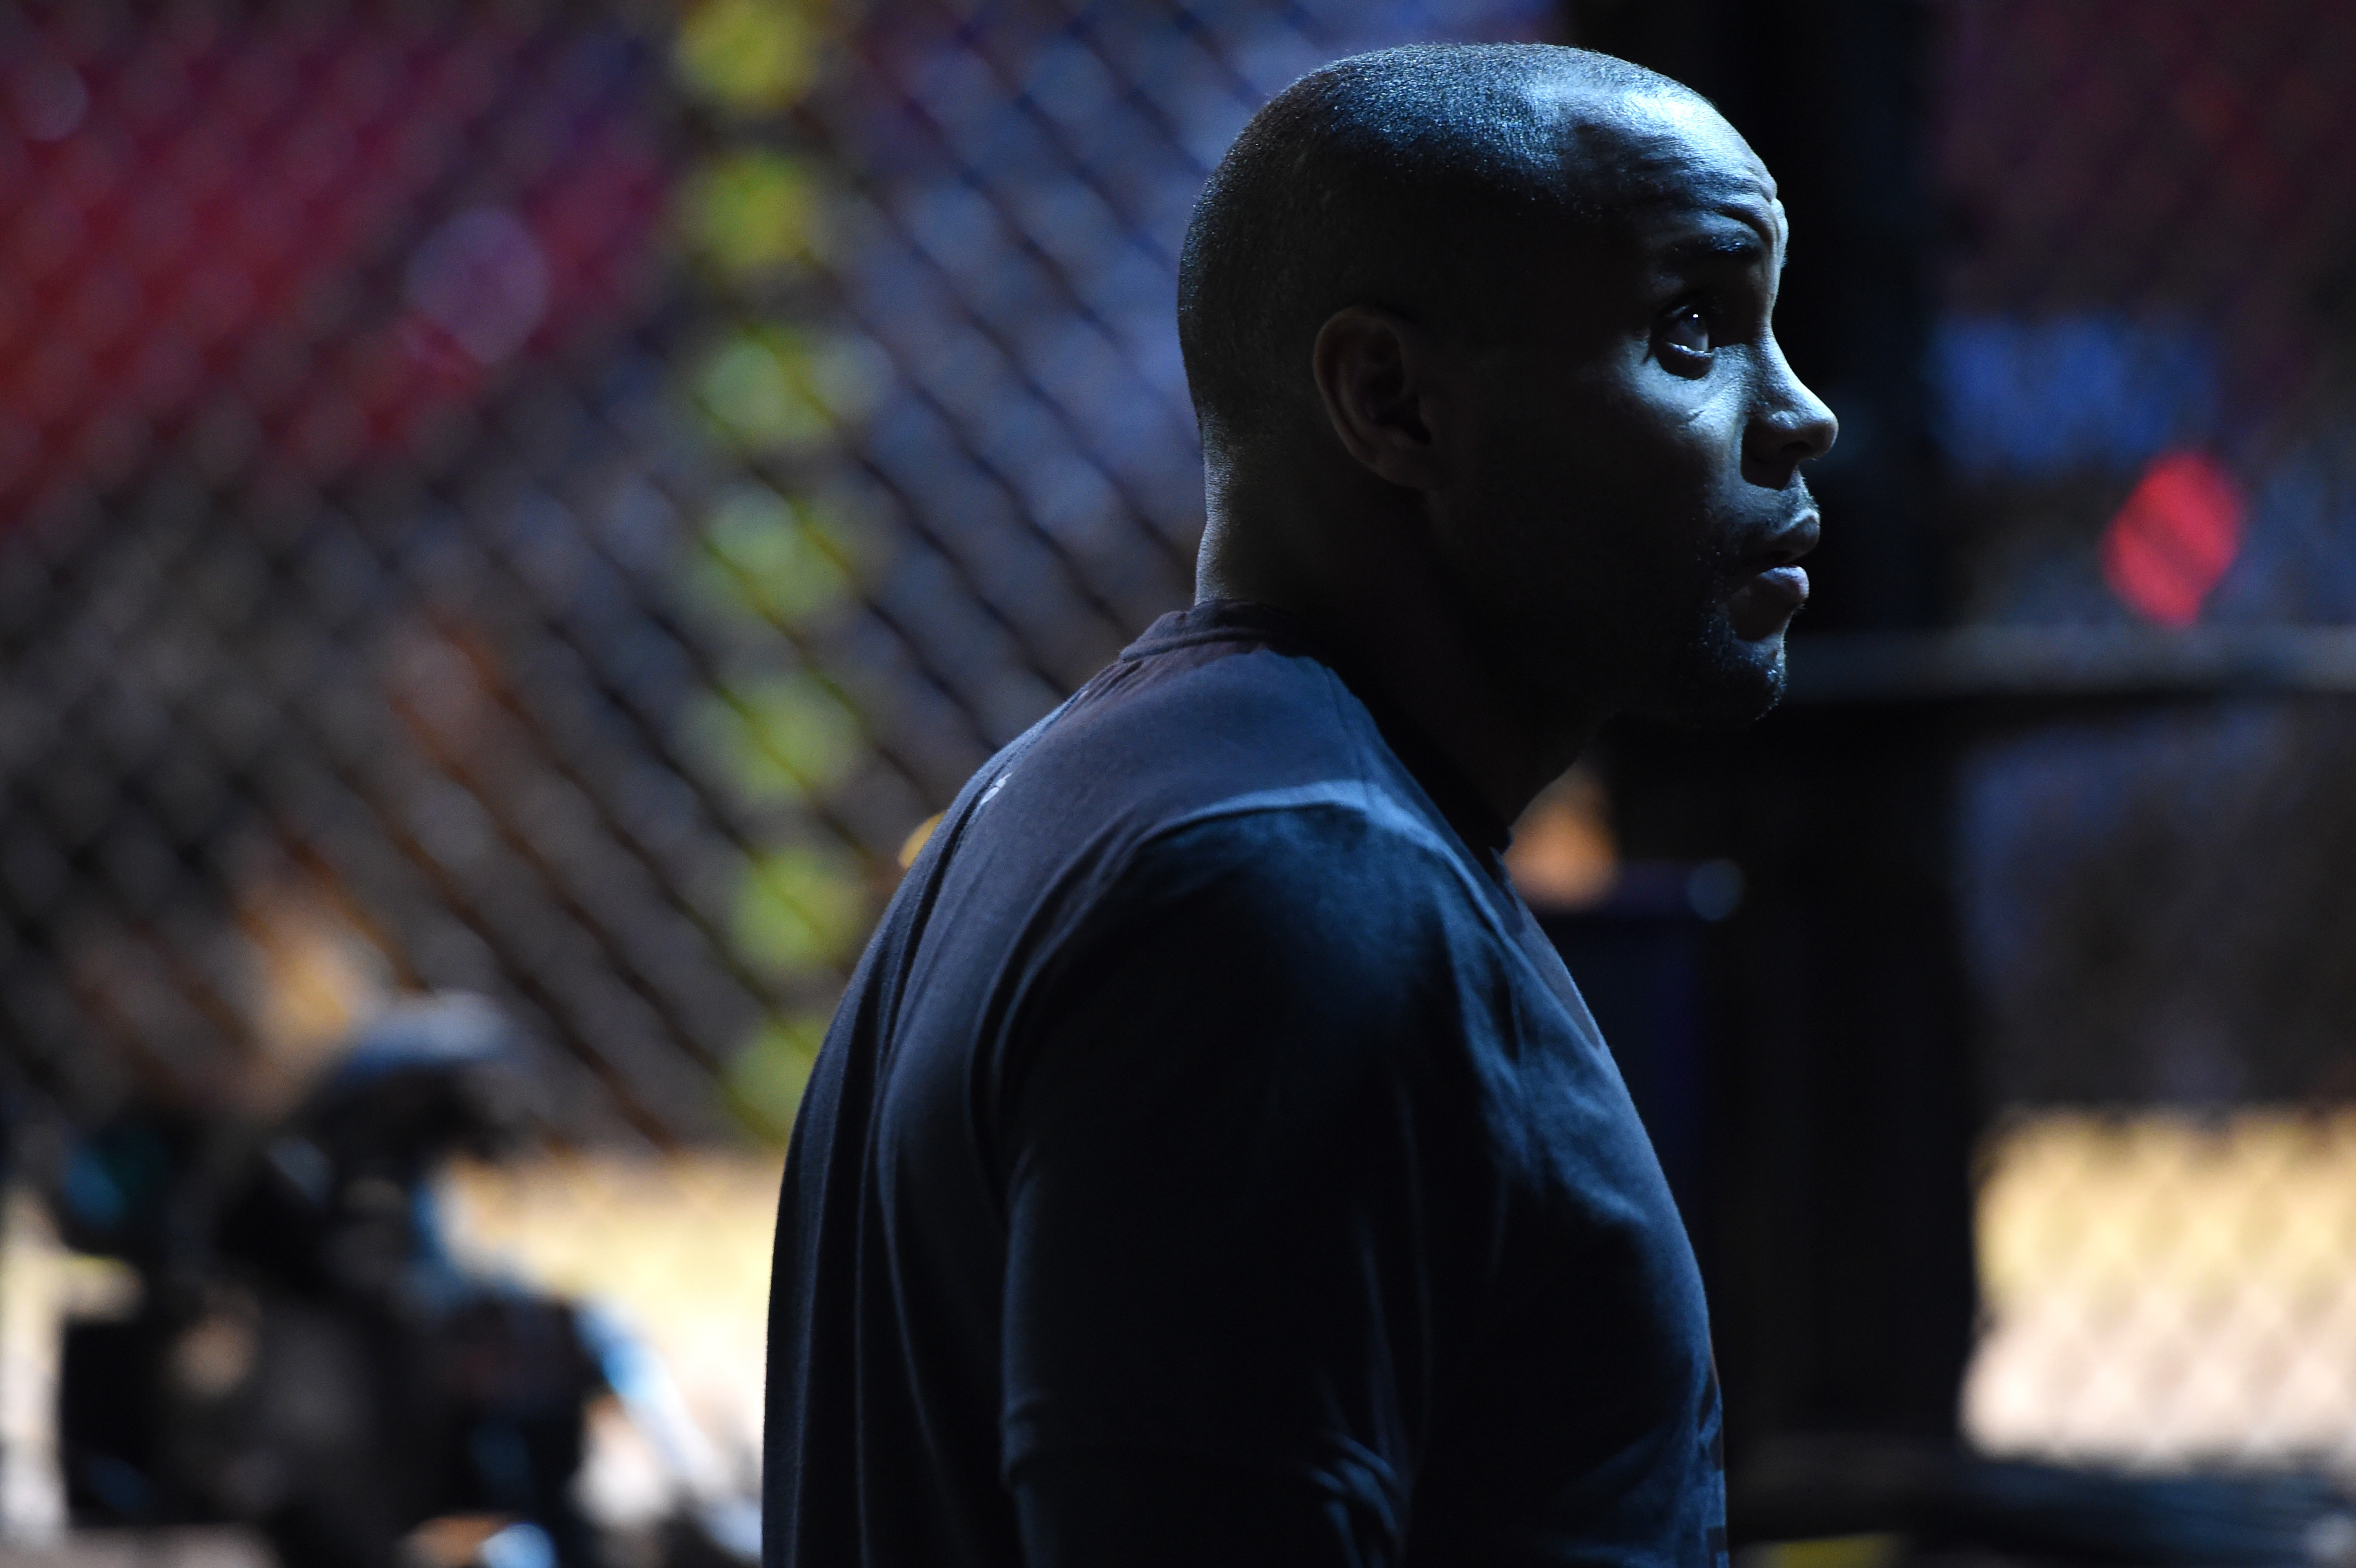 HOUSTON, TX - OCTOBER 02: Daniel Cormier waits backstage during the UFC 192 weigh-in at the Toyota Center on October 2, 2015 in Houston, Texas. (Photo by Mike Roach/Zuffa LLC/Zuffa LLC via Getty Images)